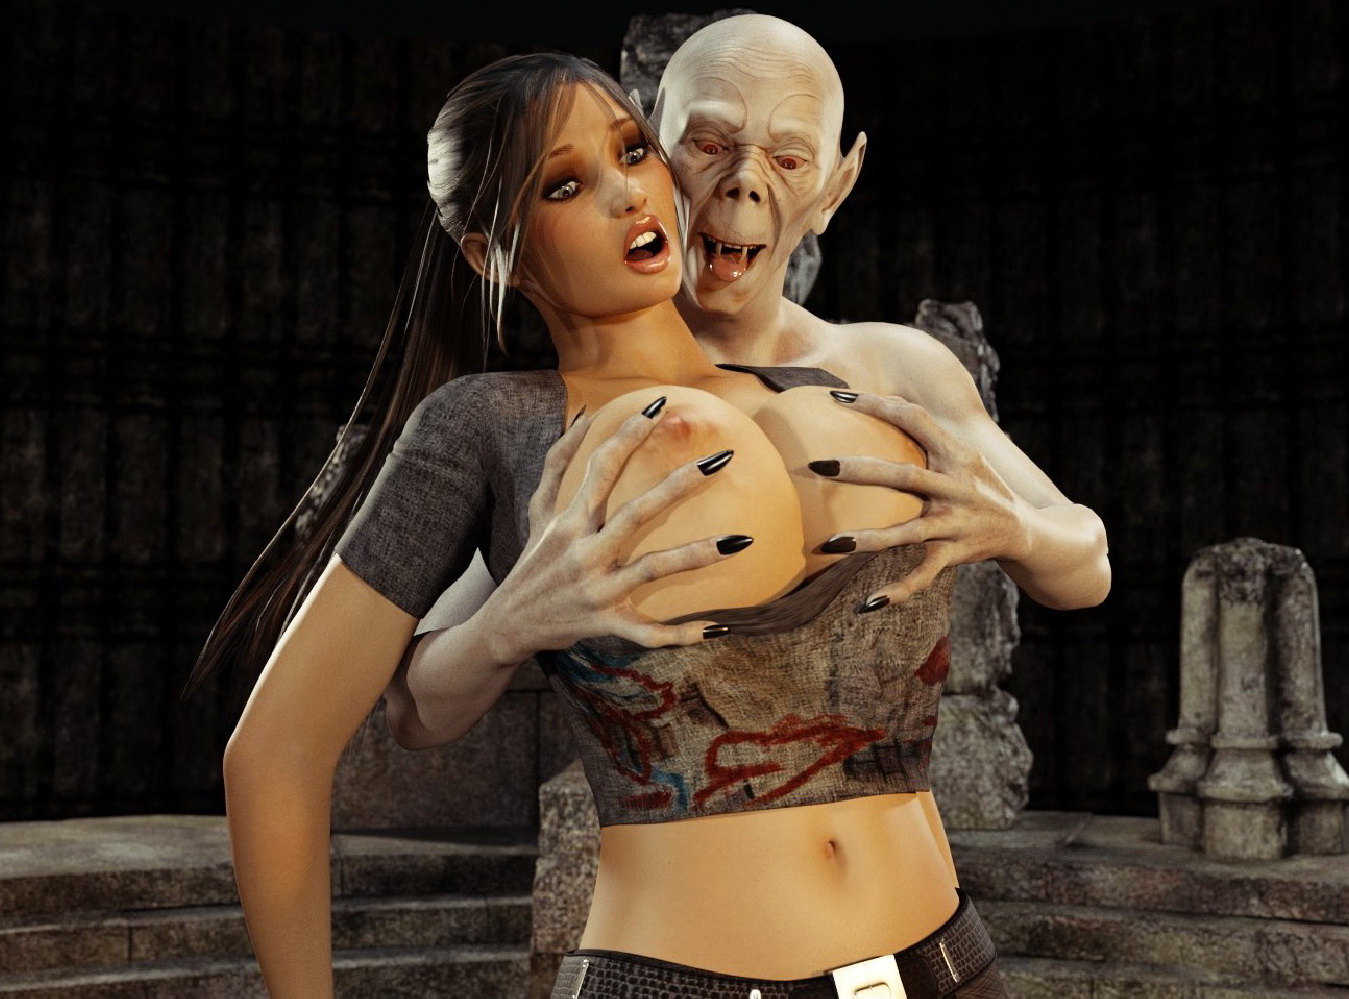 Lara croft fucked by old vampire gallery erotic movies